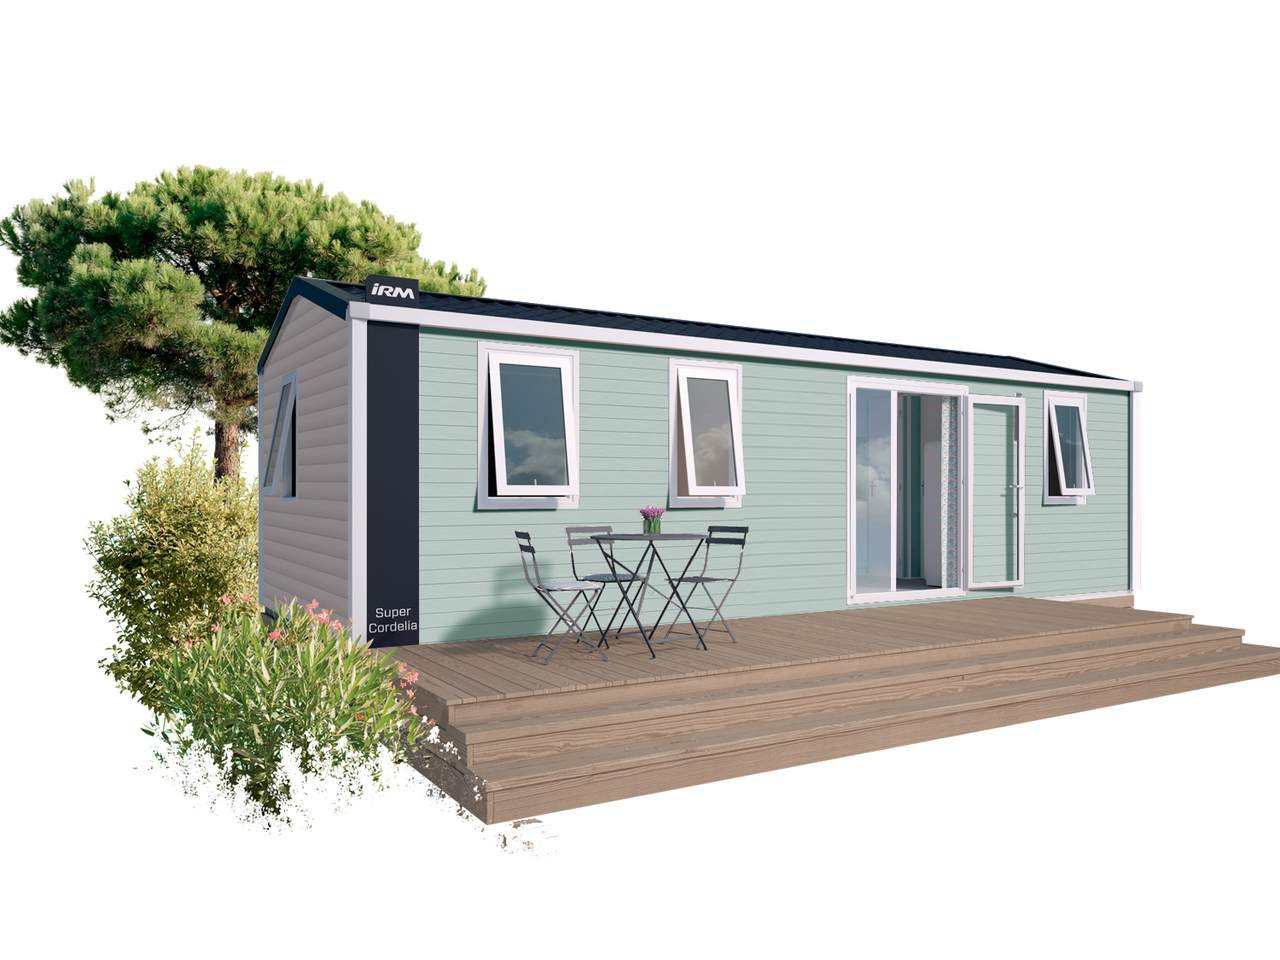 Mobile home SUPER CORDELIA - 3 bedrooms | IRM for professionals